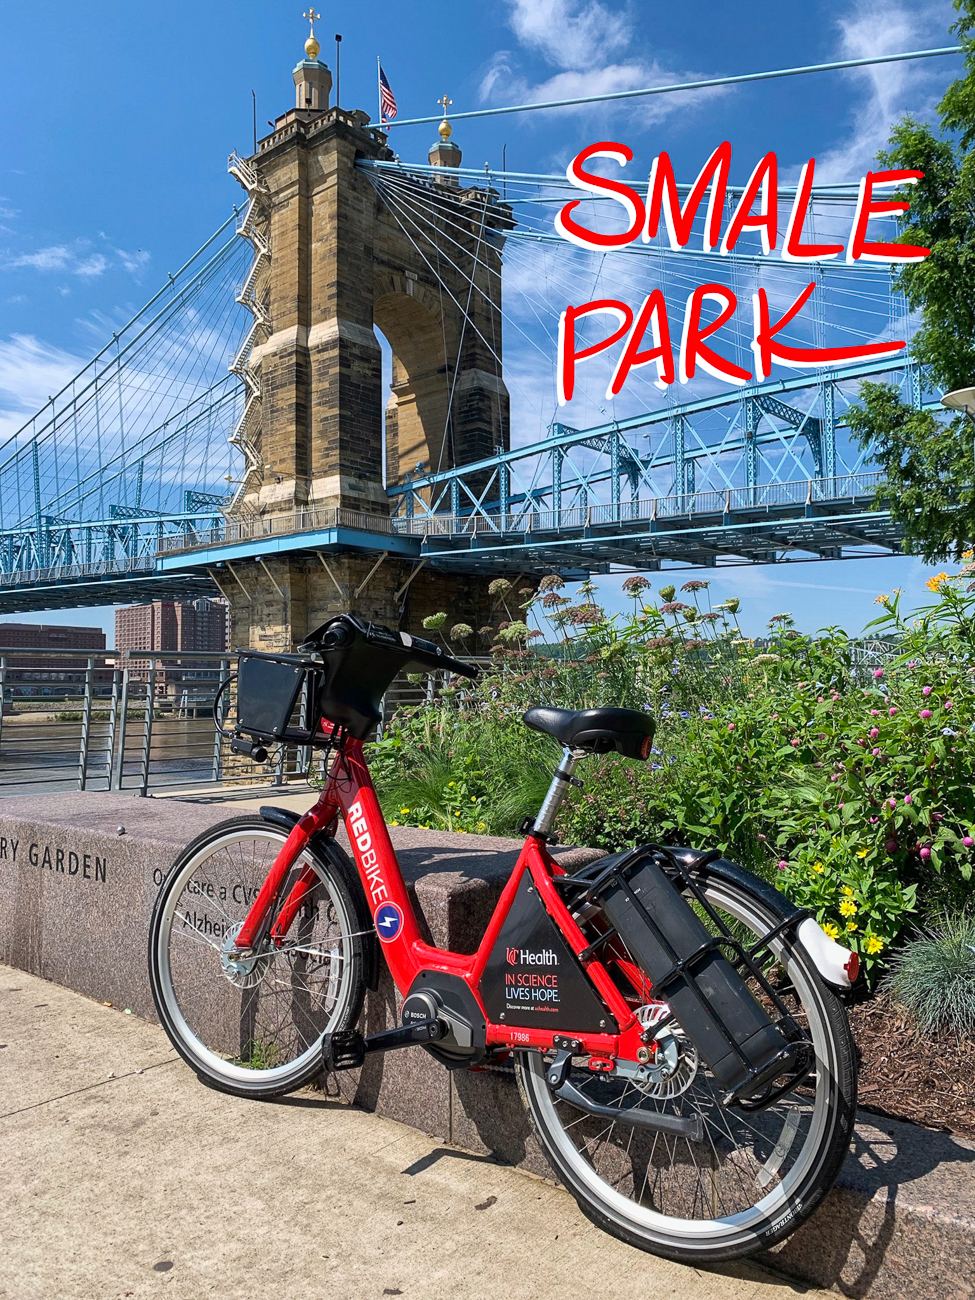 Cincy Red Bike, the popular bike-share program that originally hit city streets in September 2014, recently added a fleet of eBikes (electric-assisted bicycles) to the +50 docking stations scattered around town. While they require the rider to pedal, the eBike dramatically reduces the effort it takes to get around thanks to an internal battery-powered motor. The motor is activated by simply pedaling the bicycle after turning on the battery. The power button is on top of the LCD screen on the left handlebar. Thanks to the electric assist, riders can tackle Cincinnati's many hills and ride longer distances without tiring out as easily. There is no up-charge to use an eBike; if you have a daily/monthly pass or a yearly membership, normal bikes and eBikes are available to use. For information on pricing and how to rent a Red Bike, visit CincyRedbike.org / Image: Phil Armstrong // Published: 7.13.19